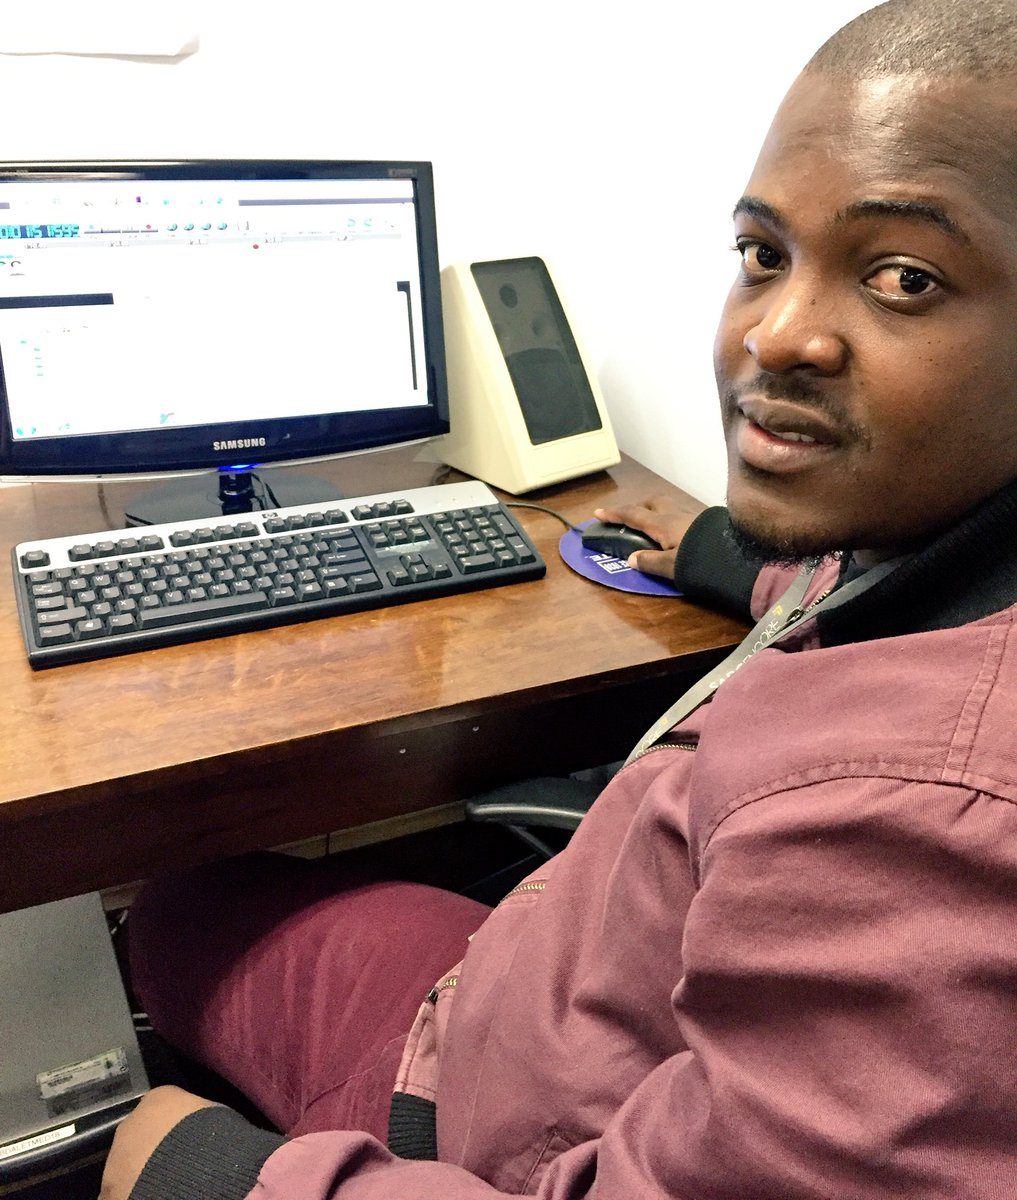 The @SABCRecordLib's Image Sibuyi at work on Dalet pulling in music for the Regions #IAD16 #archivesrock https://t.co/dg6IteQtuA